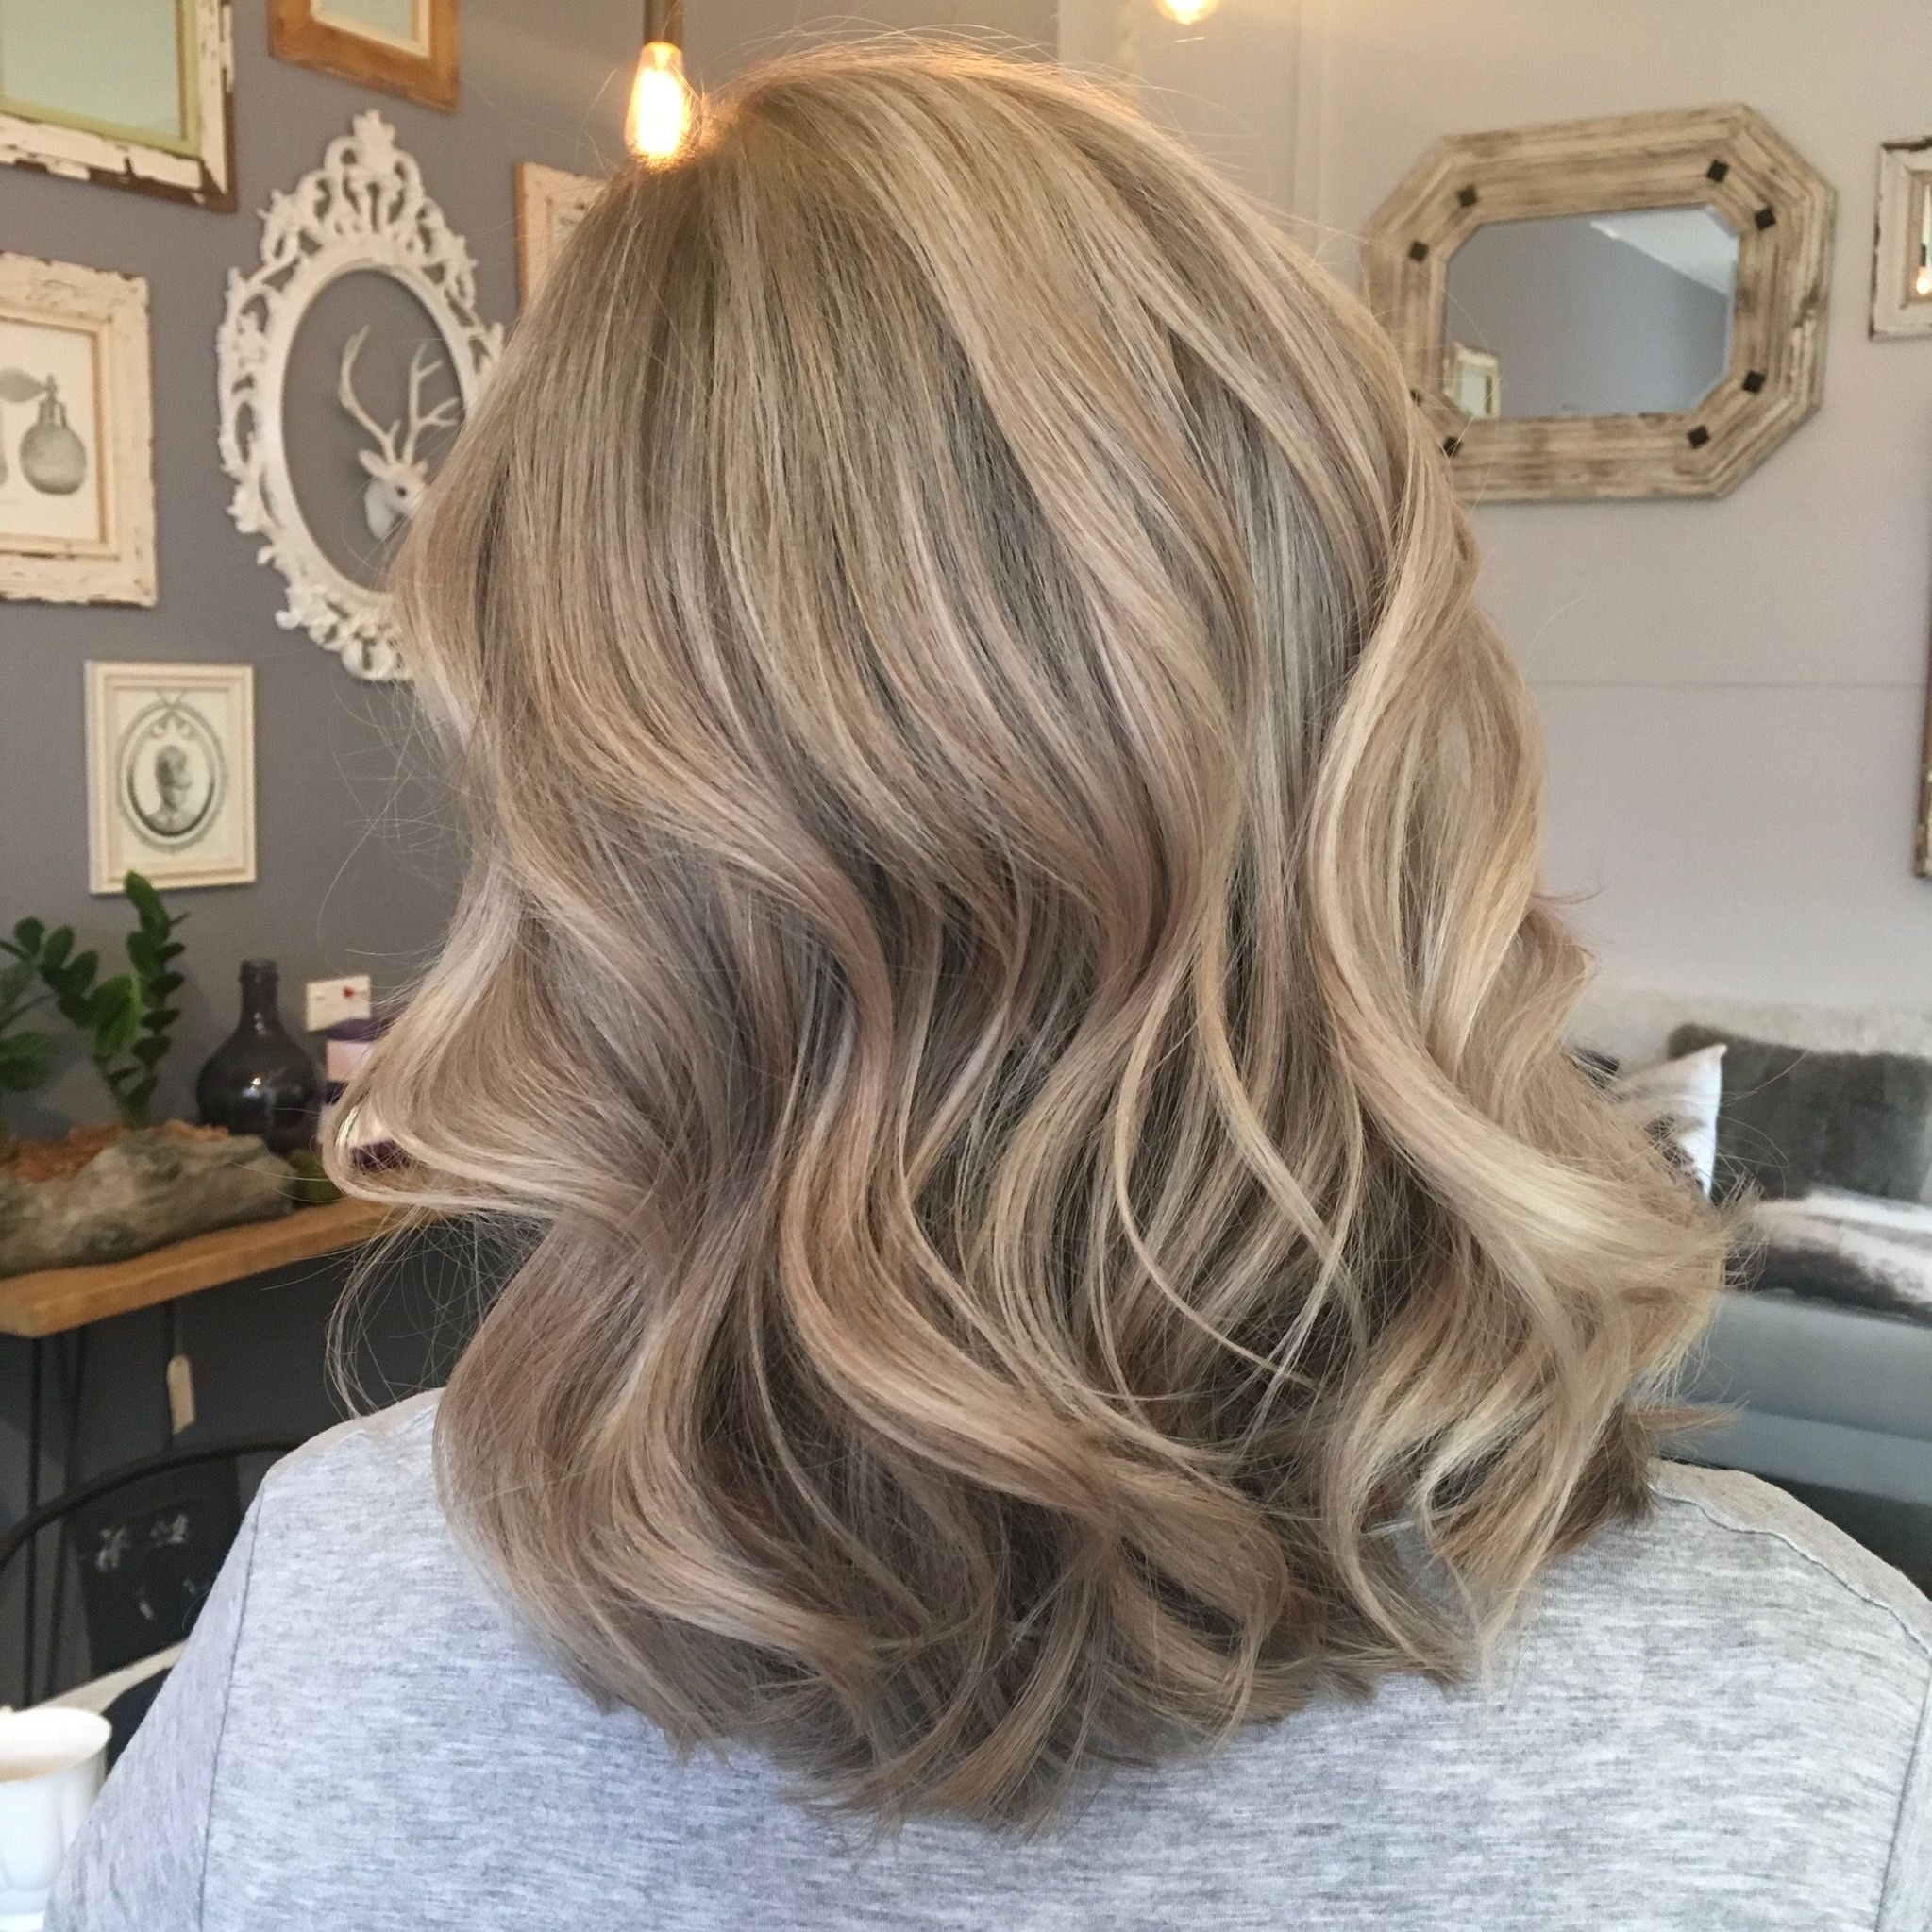 Blonde Blondes Bright Blondes Creamy Blondes Waves Style Ashy For Well Known Creamy Blonde Waves With Bangs (View 5 of 20)